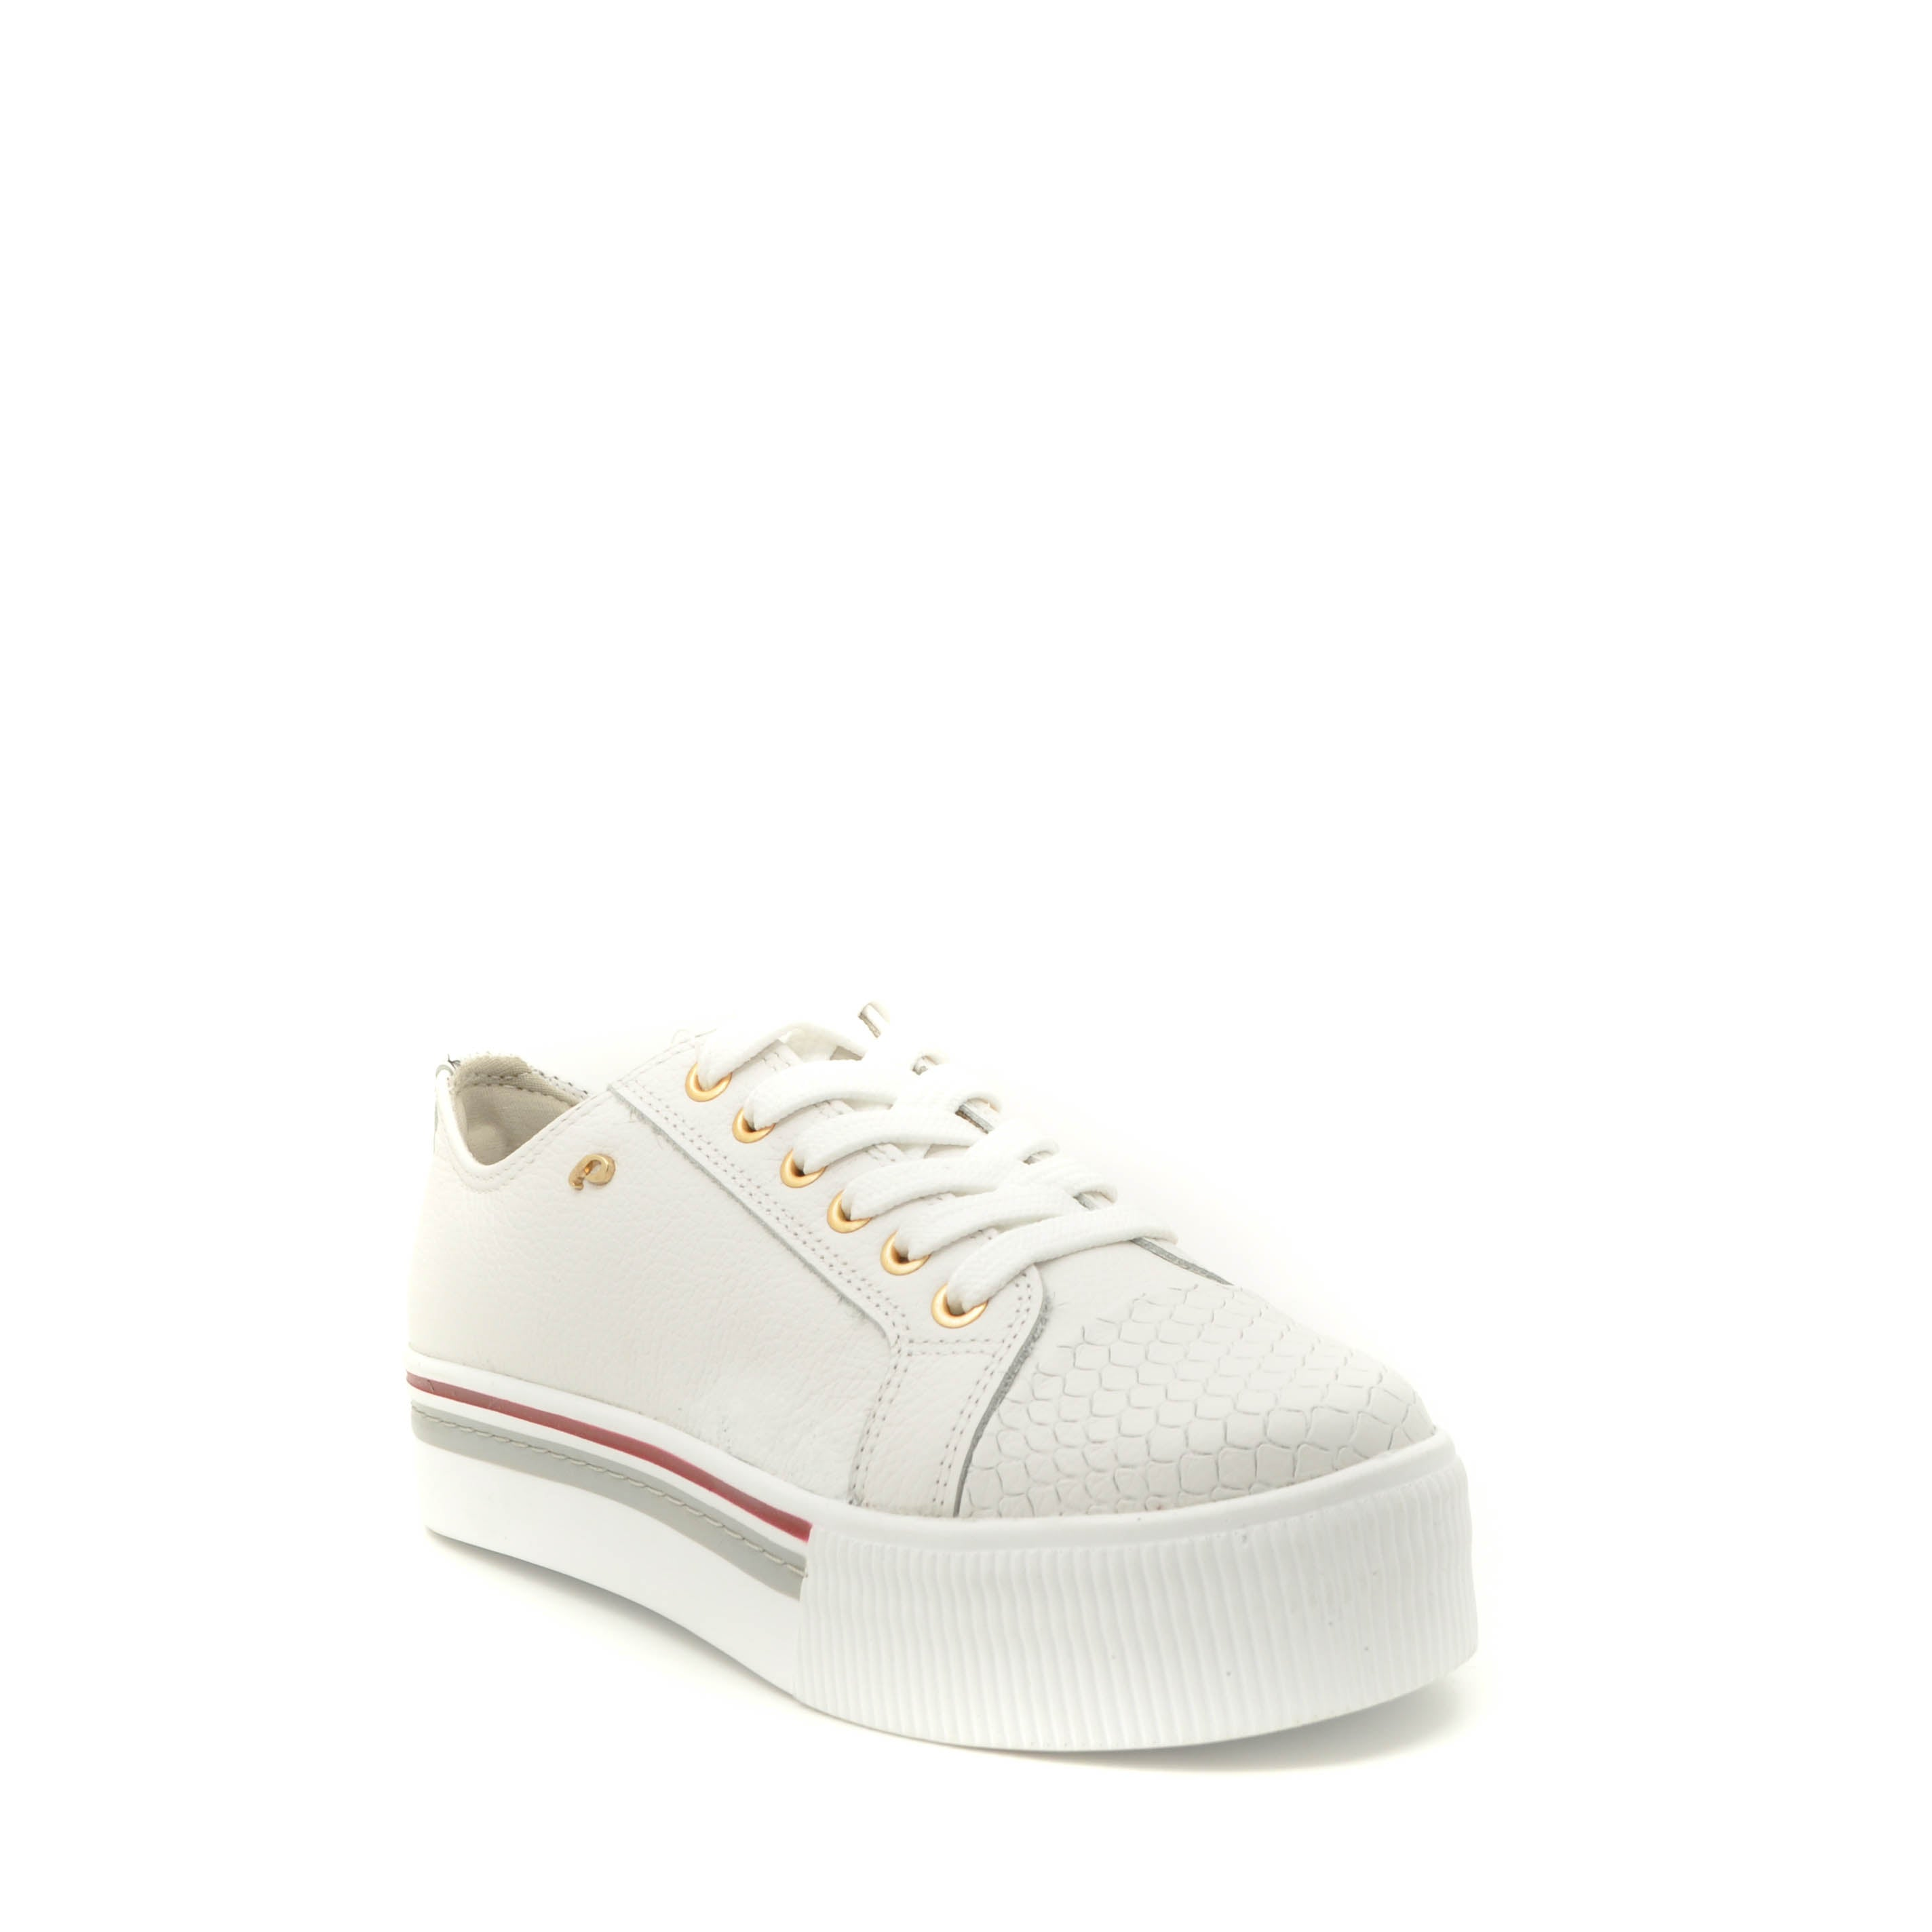 white leathers shoe